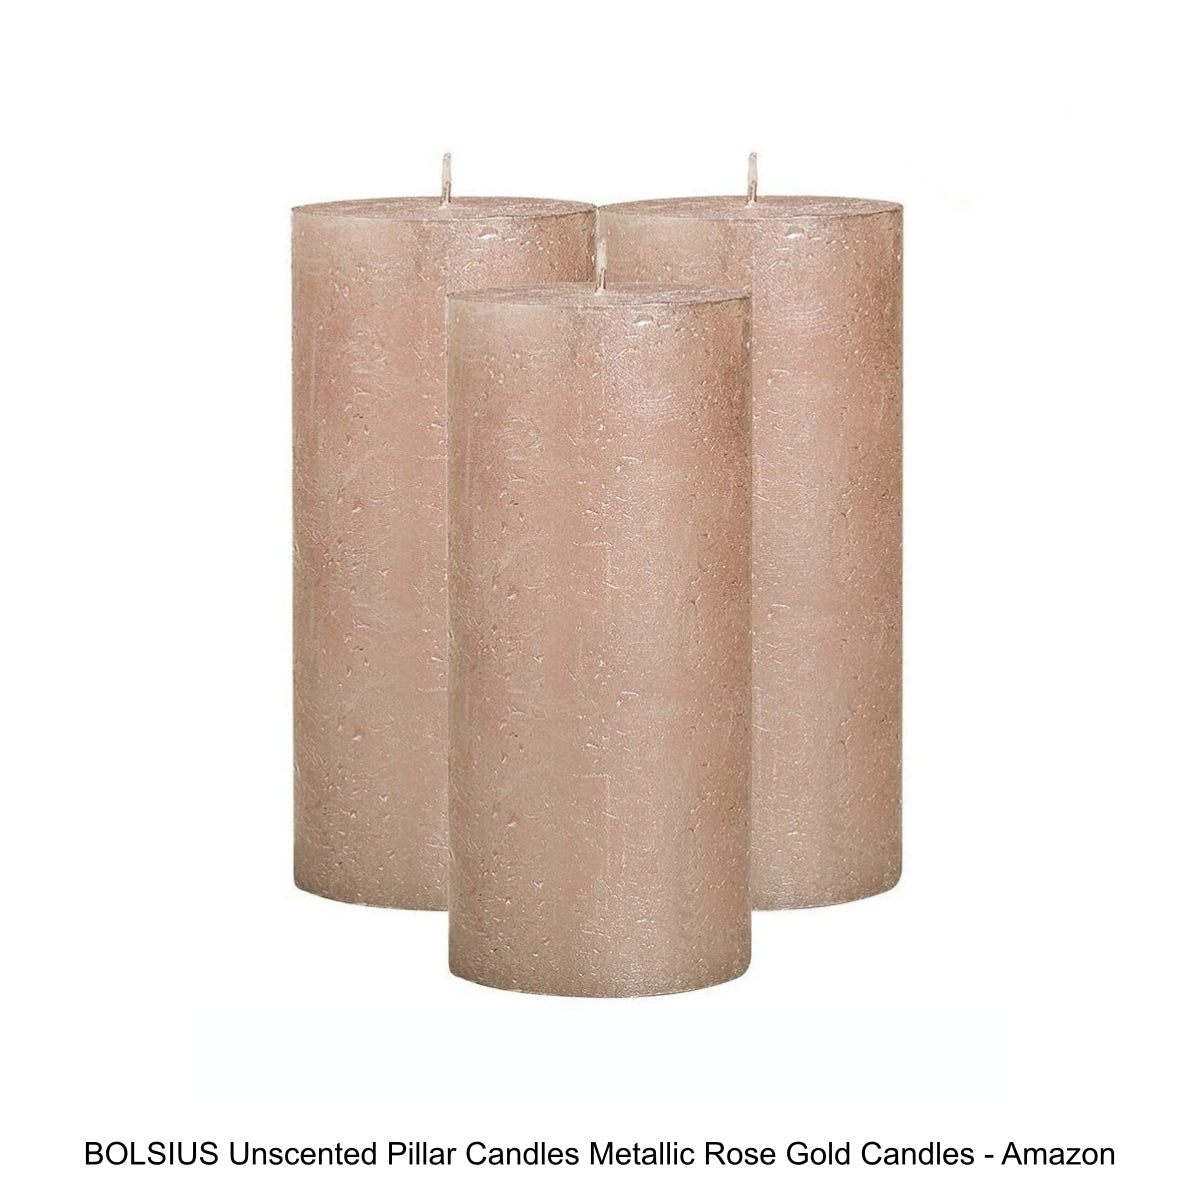 BOLSIUS Unscented Pillar Candles Metallic Rose Gold Candles - Amazon